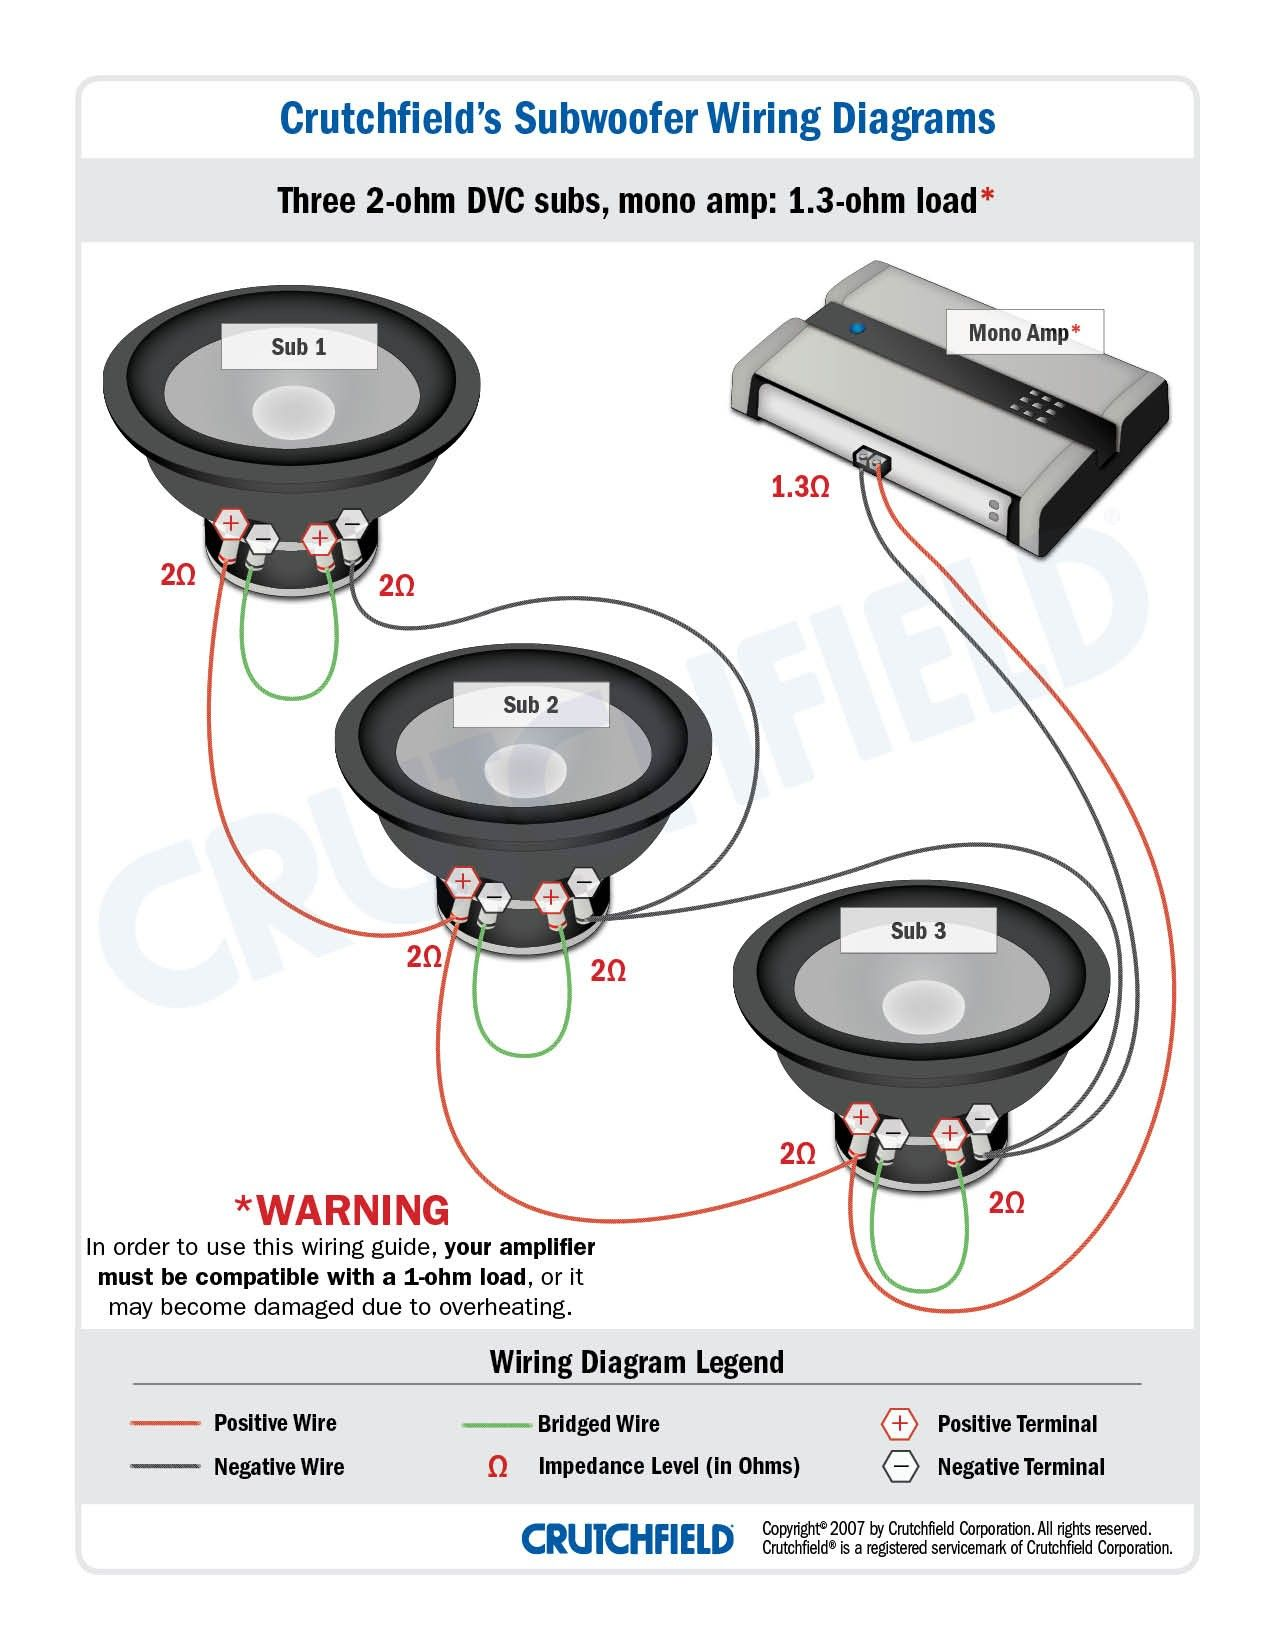 New Wiring Diagram For Car Stereo Subwoofer Subwoofer Wiring Subwoofer Car Audio Installation